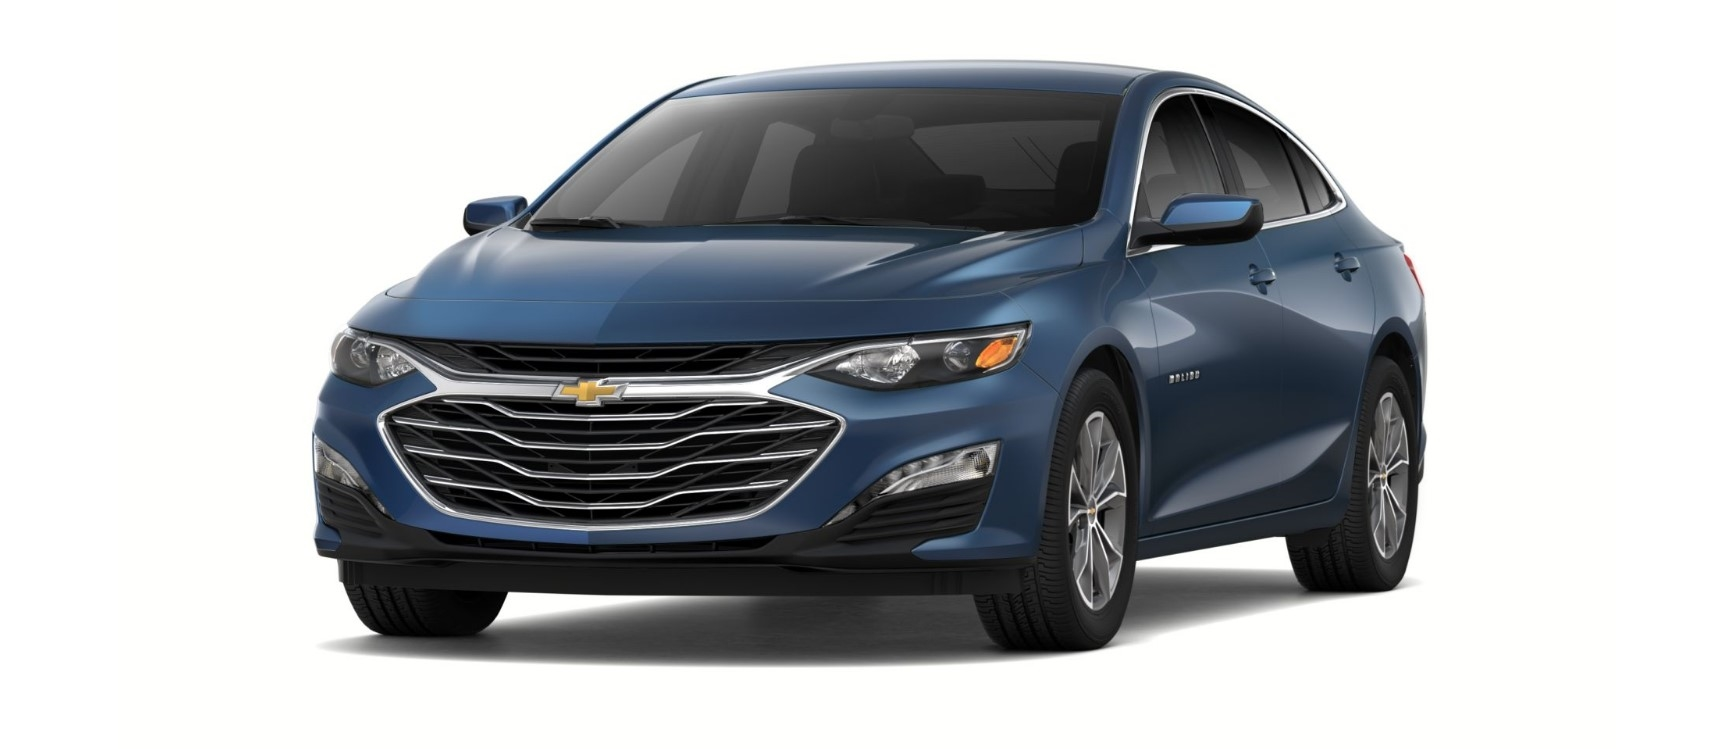 2020 Chevrolet Malibu Hybrid Features, Specs and Price ...